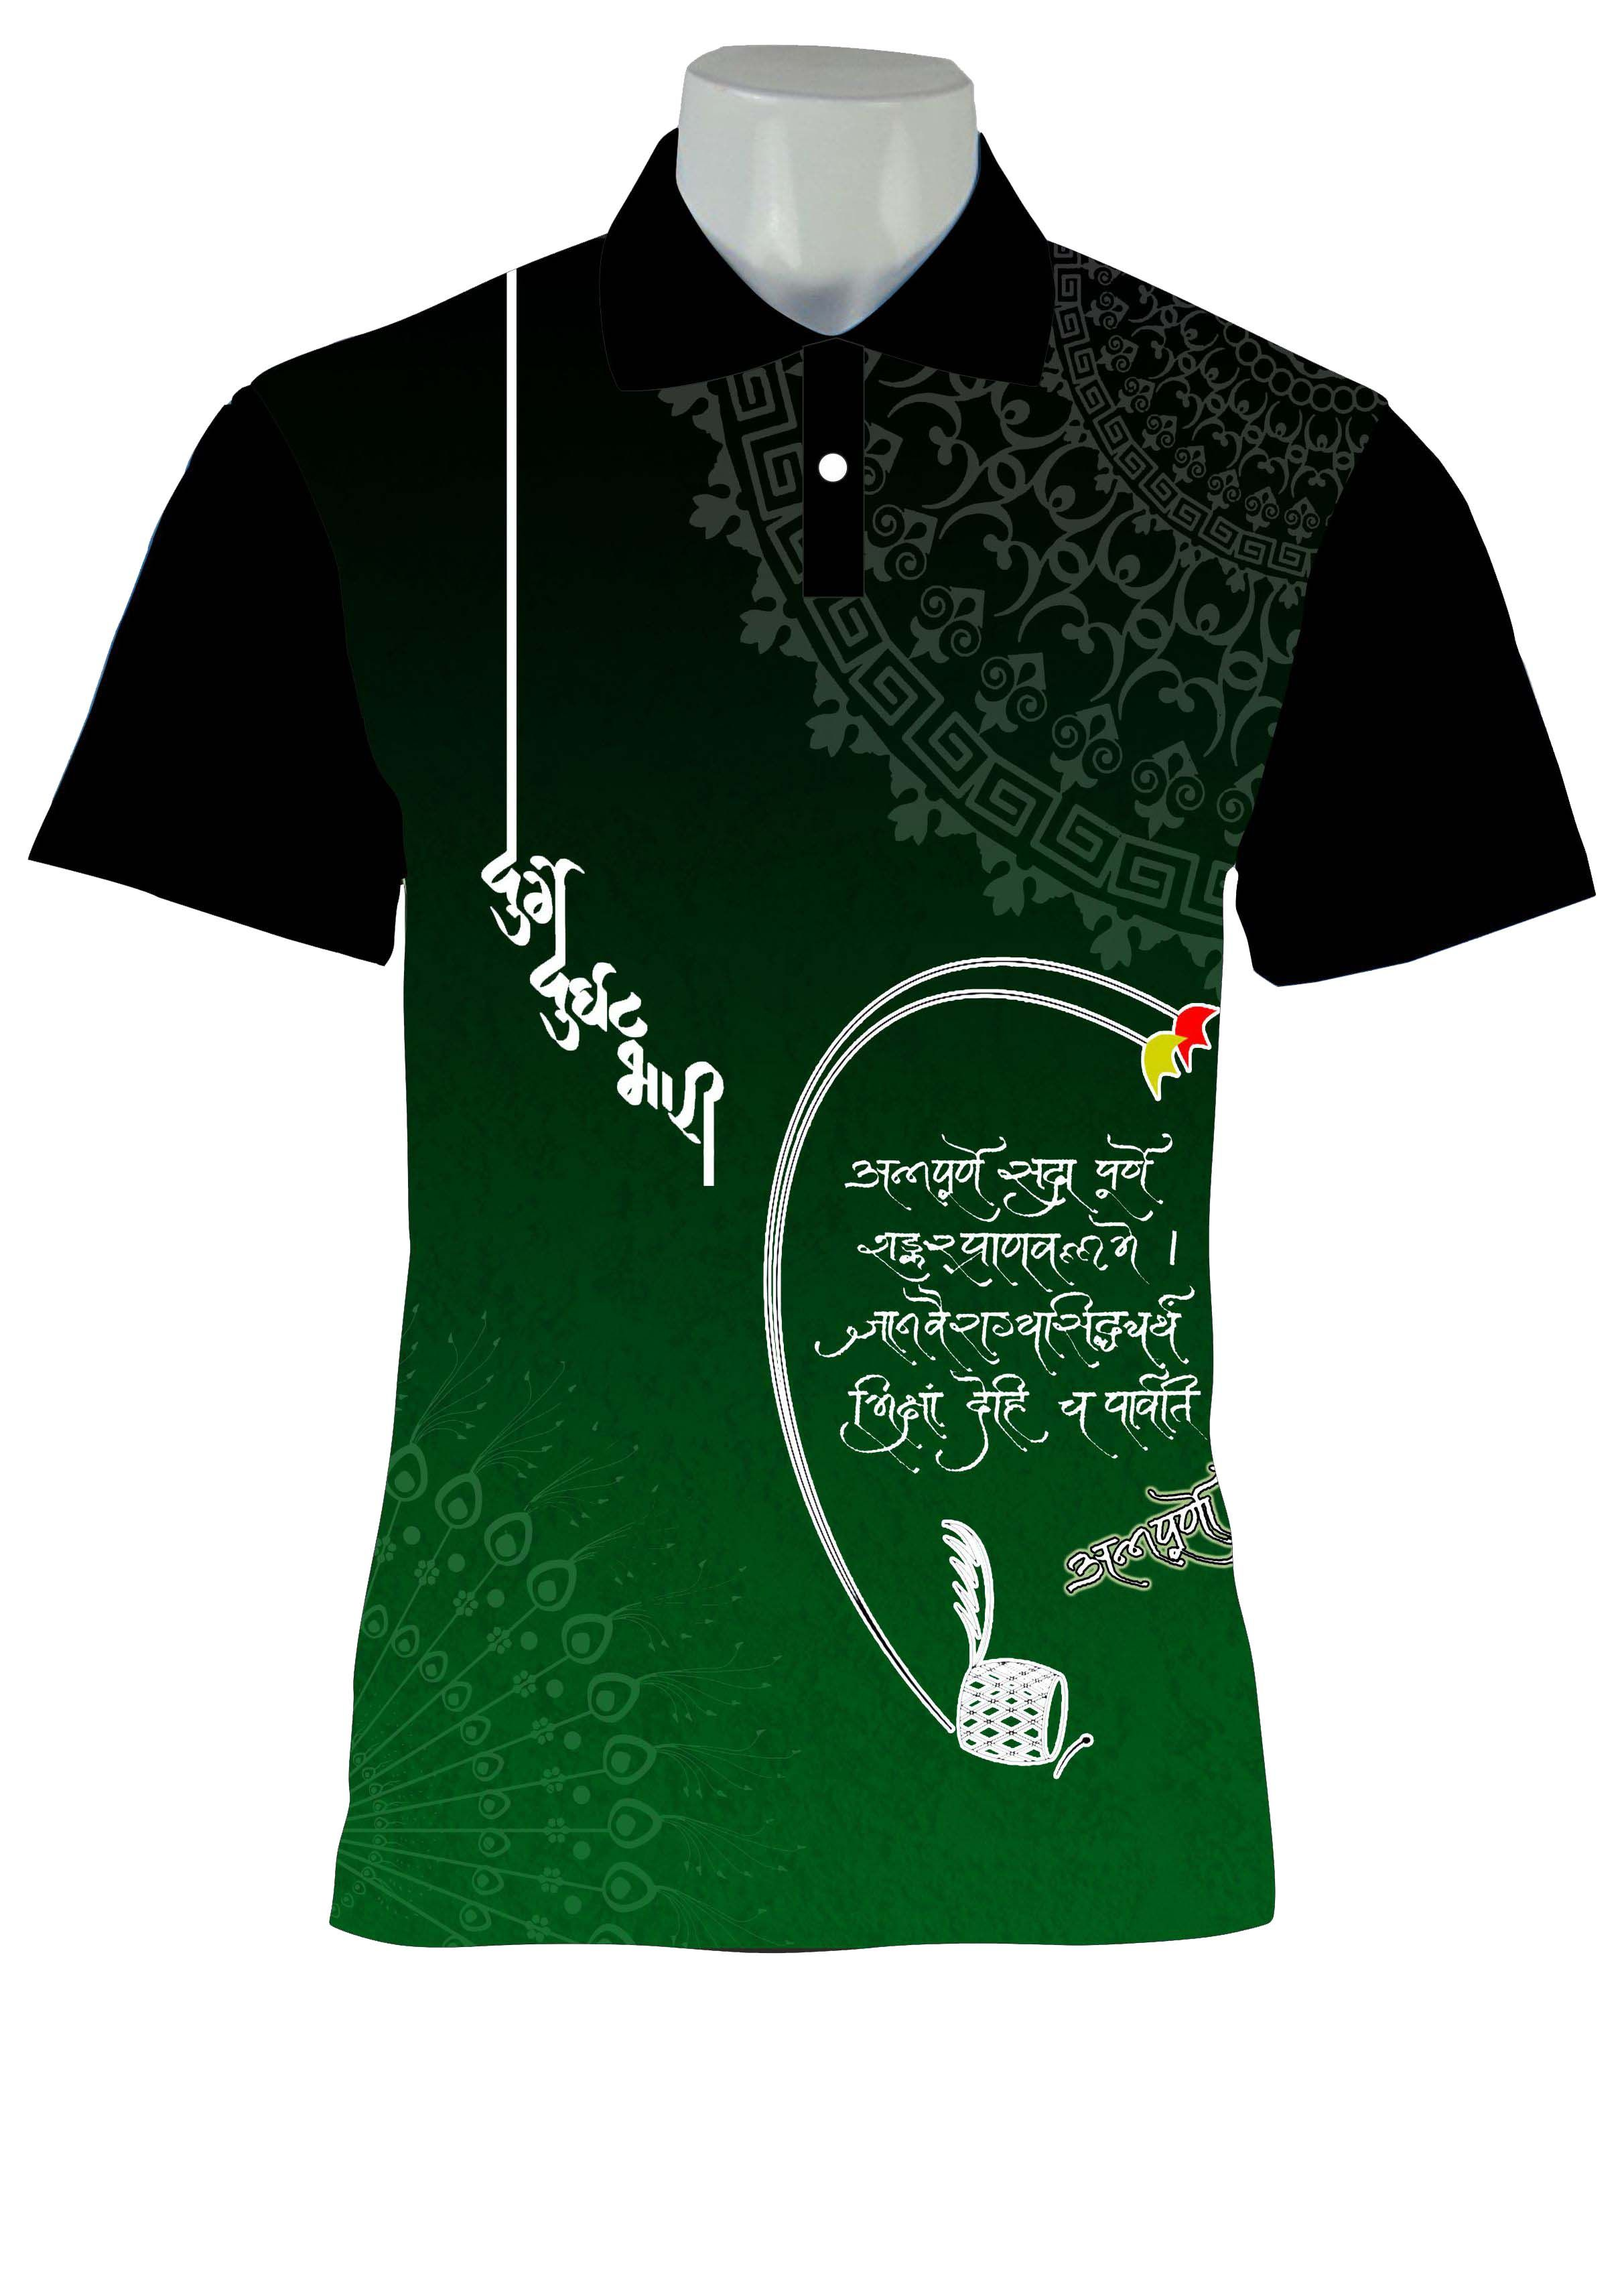 Get your own customized DEVI Tshirt with your logo for